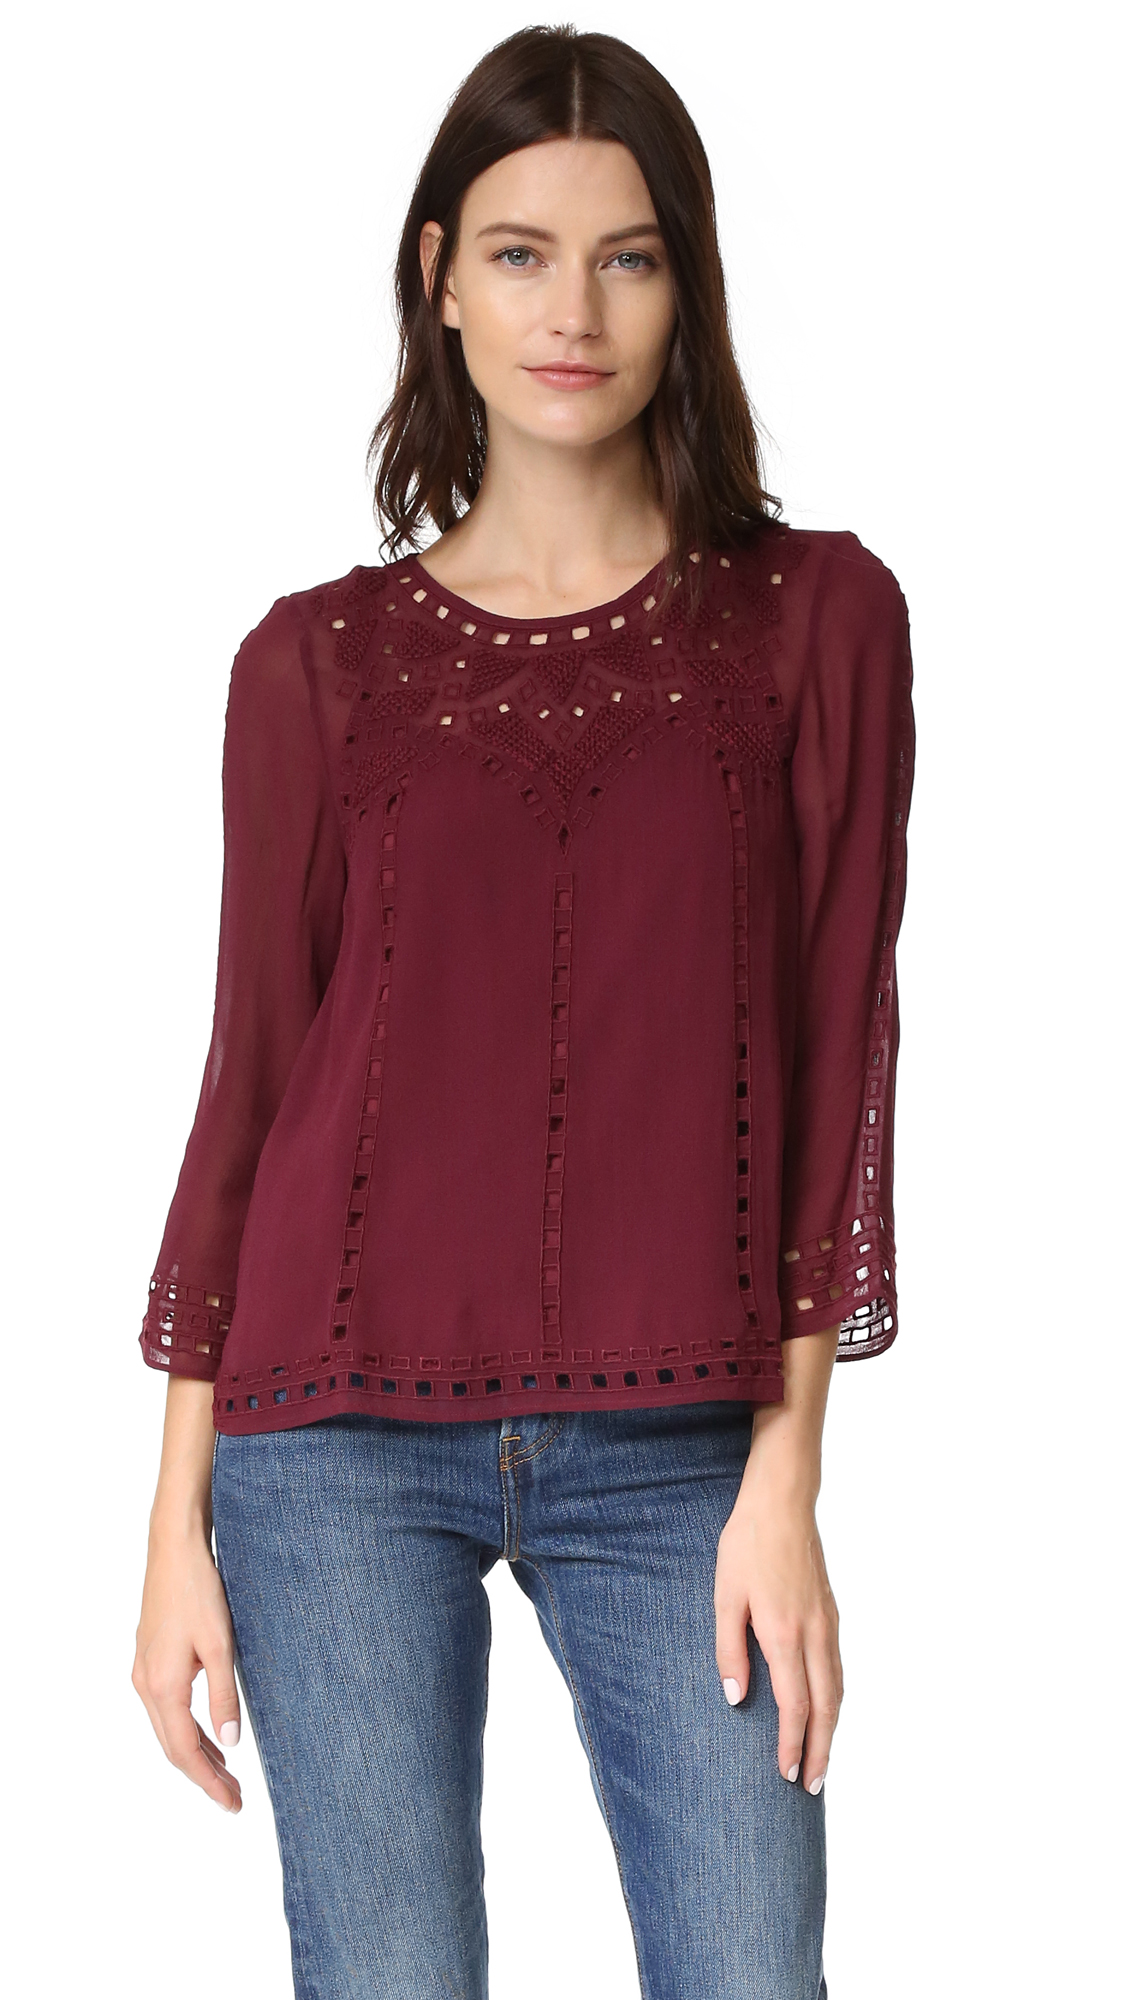 Joie Gaiane Blouse - Raisin at Shopbop